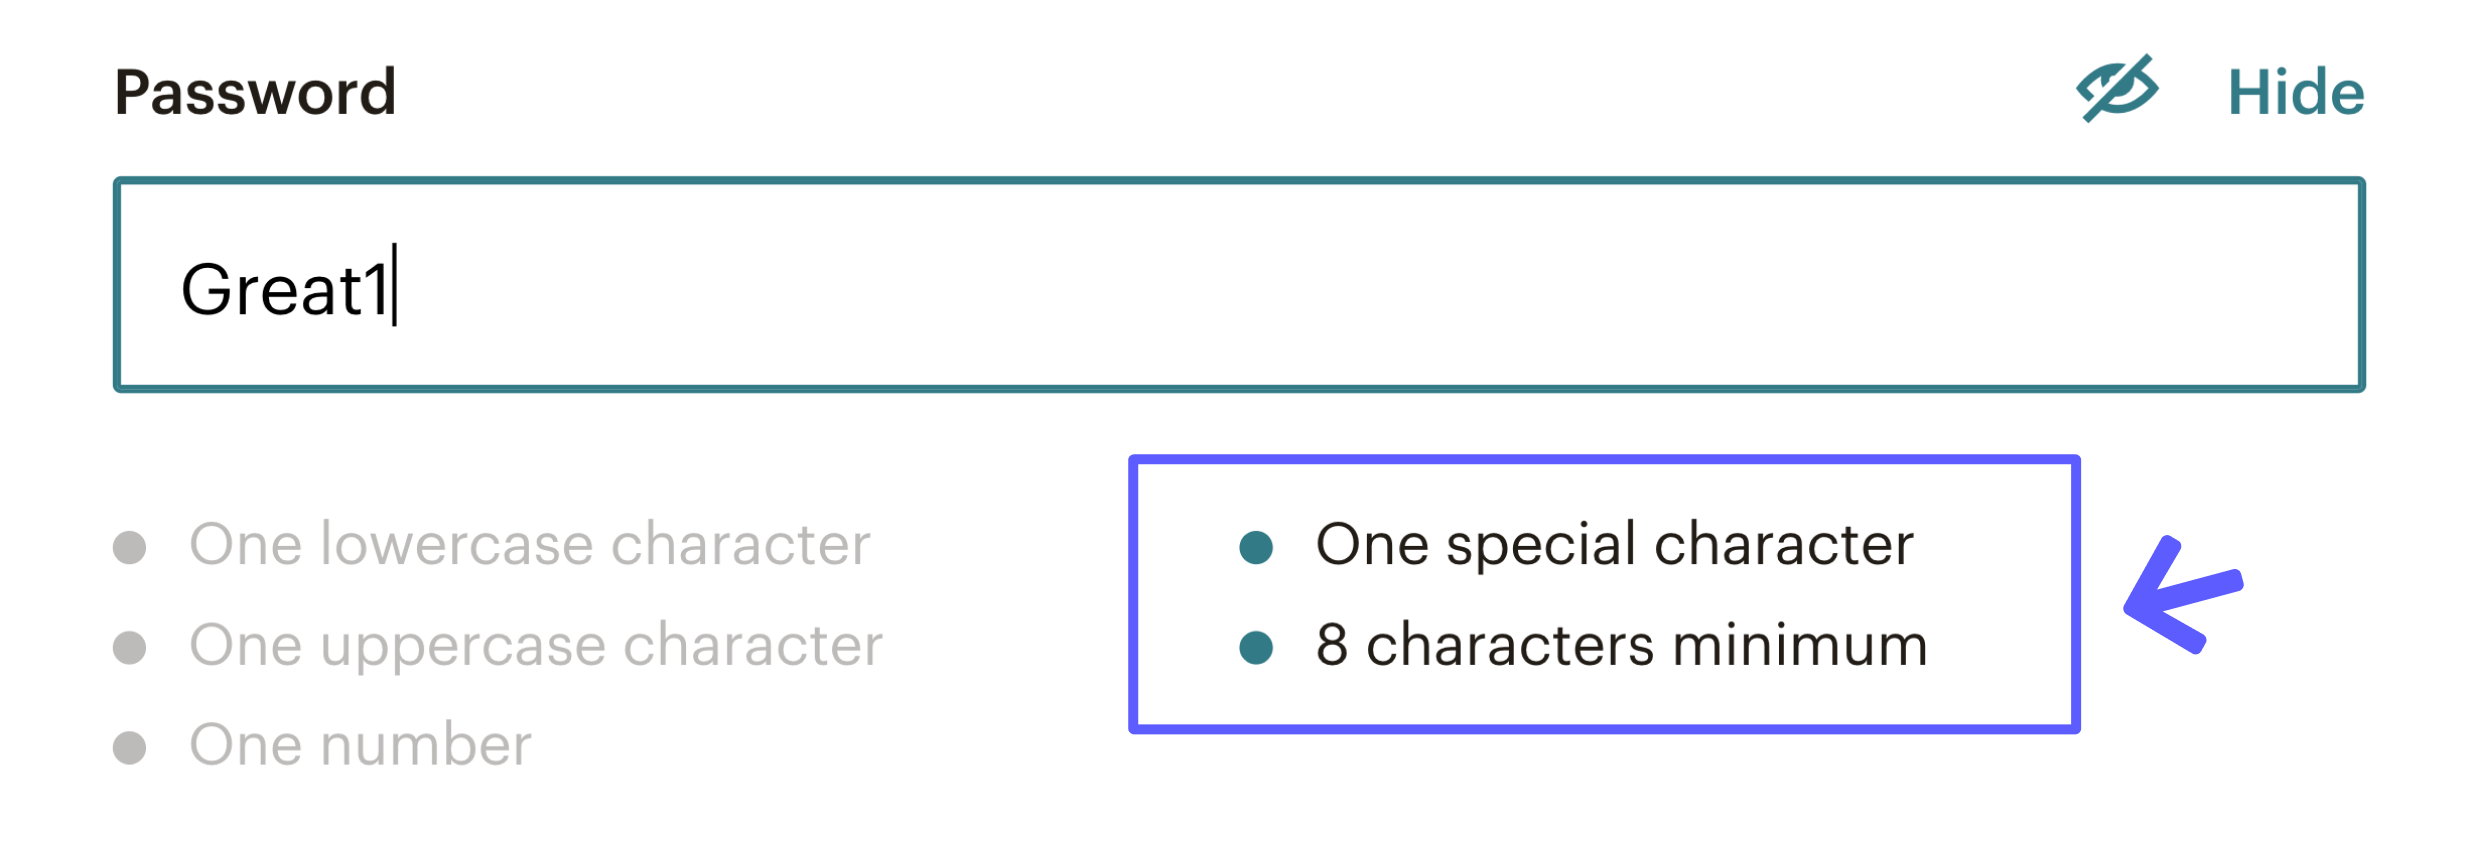 This is an image of a realtime password checker which is an example of good UX. Below the password field is a lsit of requirements. this has been highlighted with a drawn box and arrow